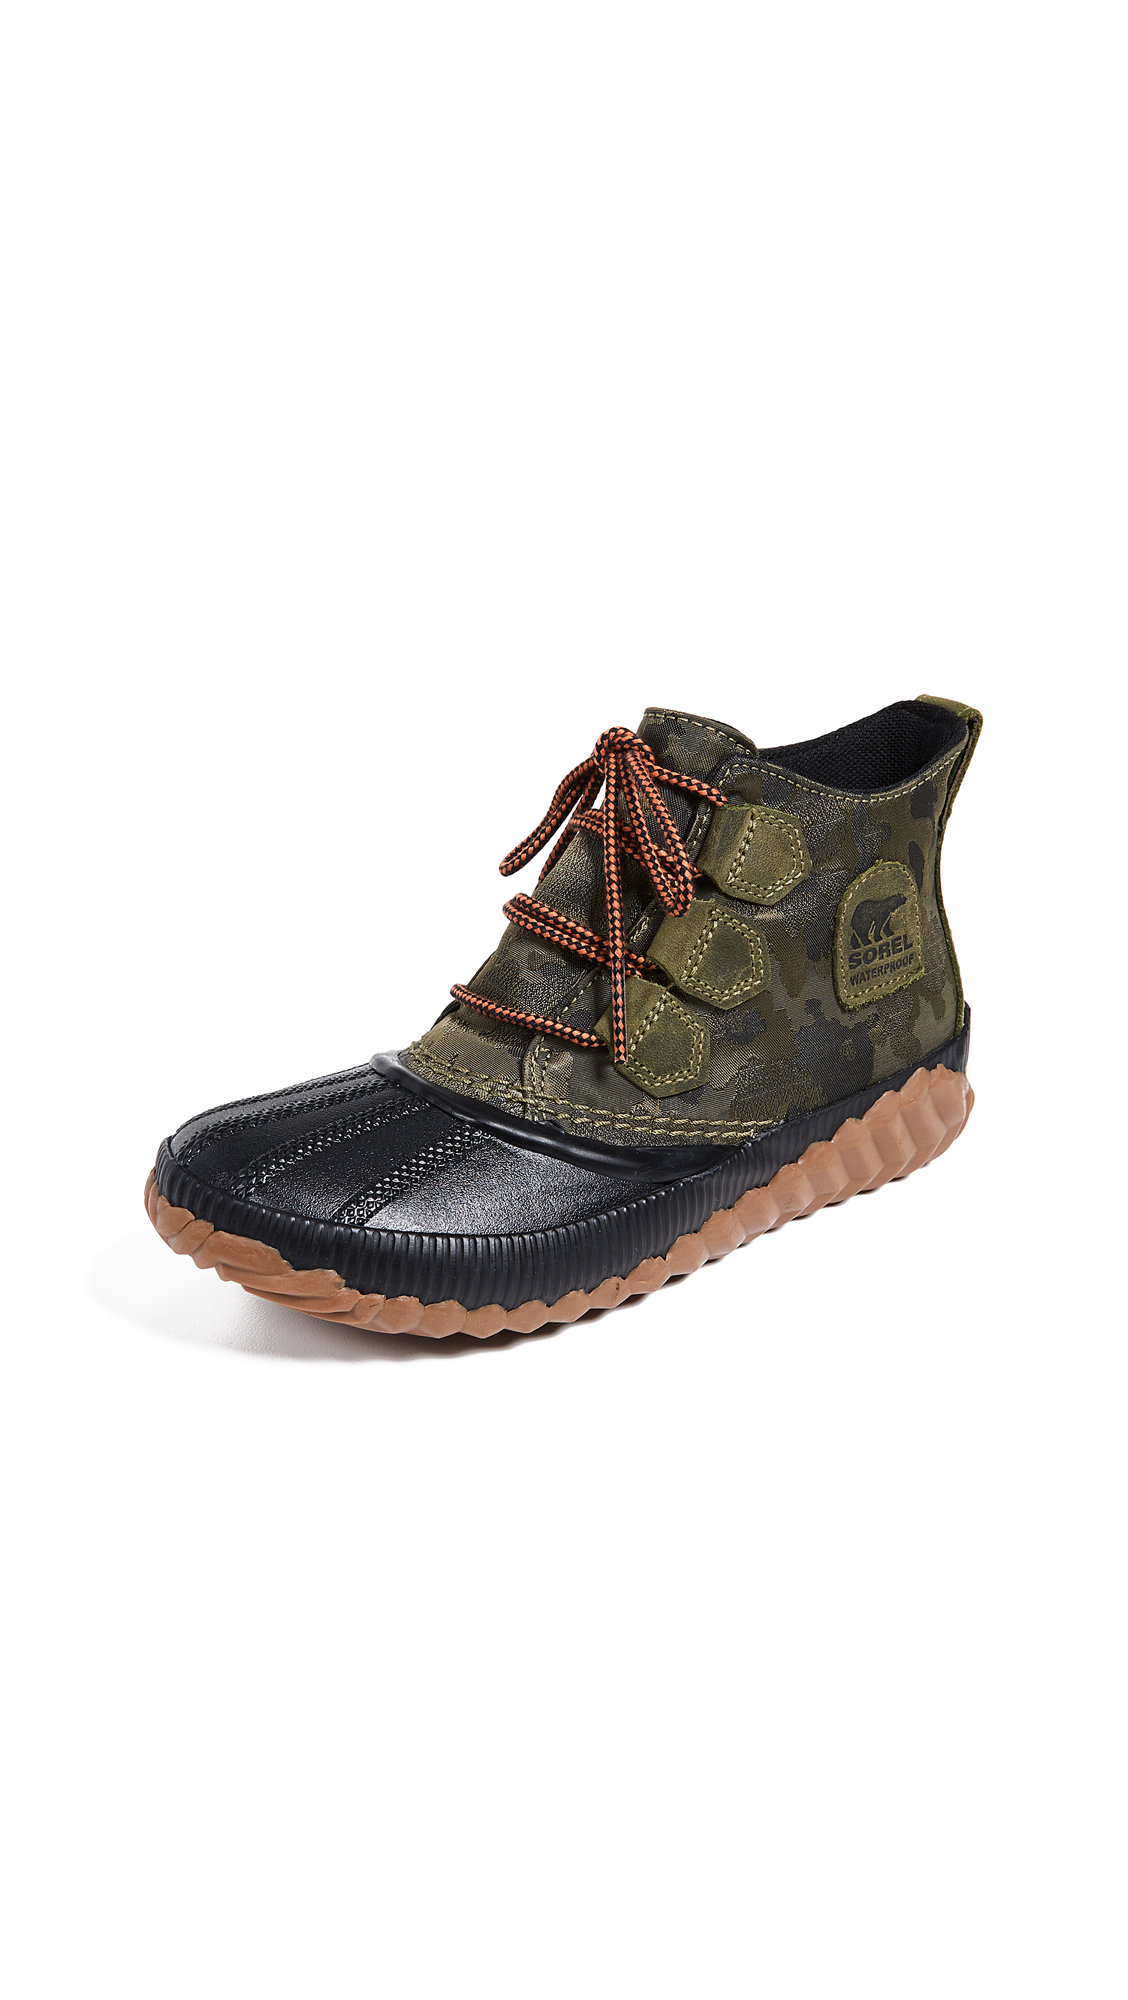 Sorel Out N About Plus Boots - Camo/Hiker Green